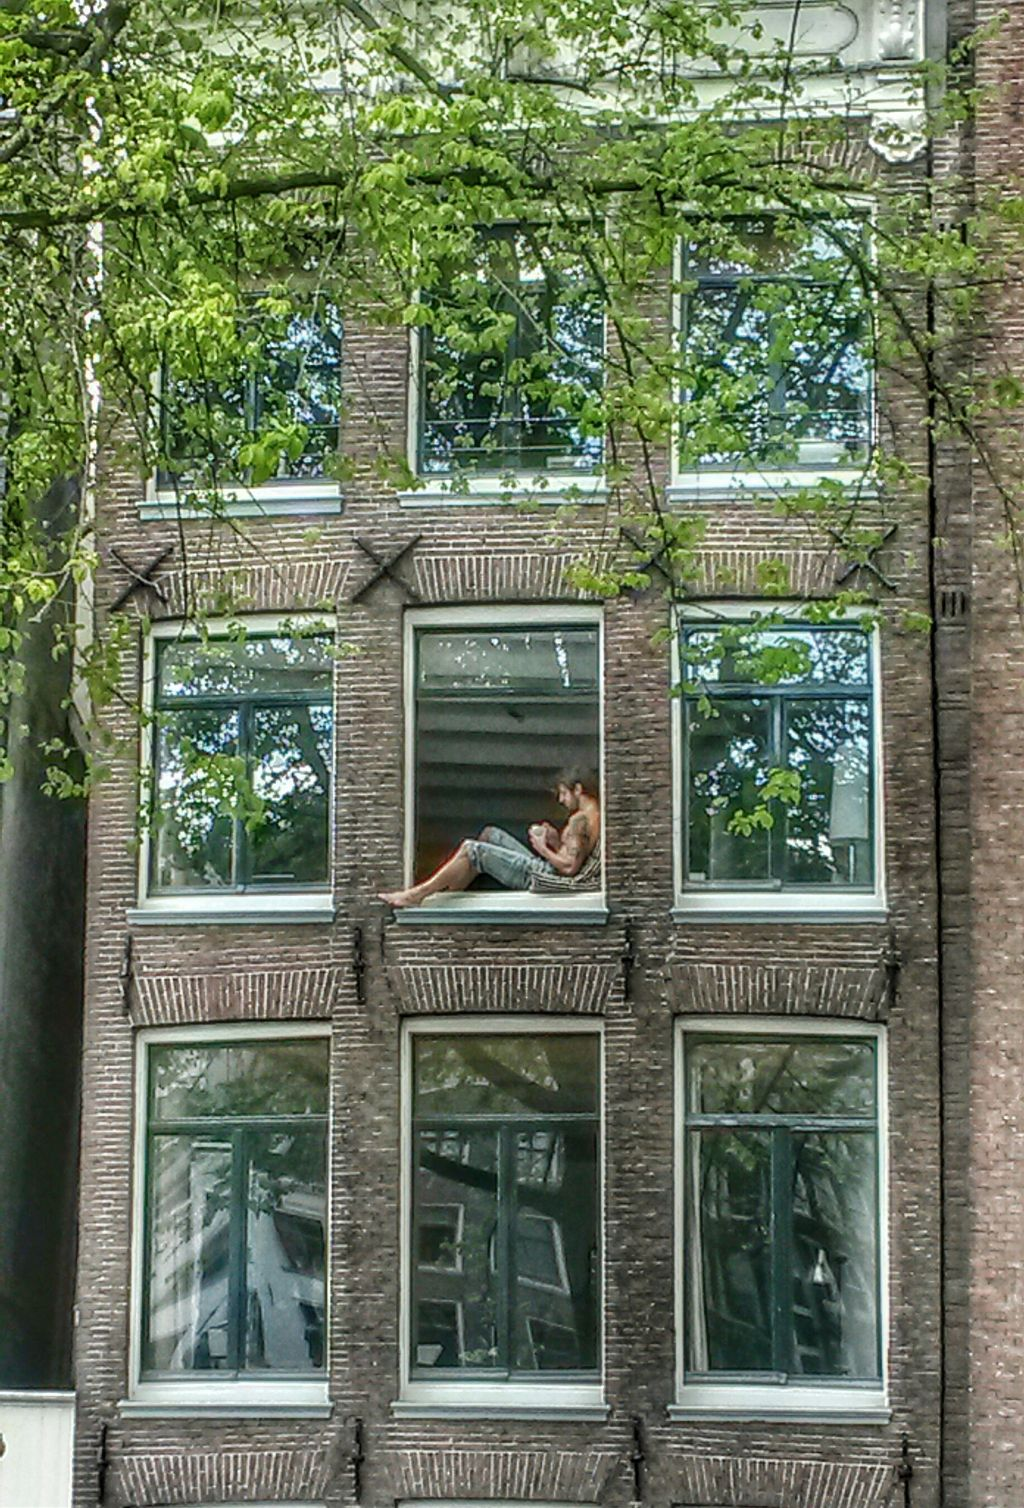 THANKS TO ALL MY FRIENDS FOR MAKING ME REACH #4 ON THIS CHALLENGE!!! 💞🤗 CAUGHT THIS GUY AT THE WINDOW AS I WAS WALKING IN AMSTERDAM  #amsterdam #people #window #myphoto #mypicture #pcsomeoneinawindow #someoneinawindow